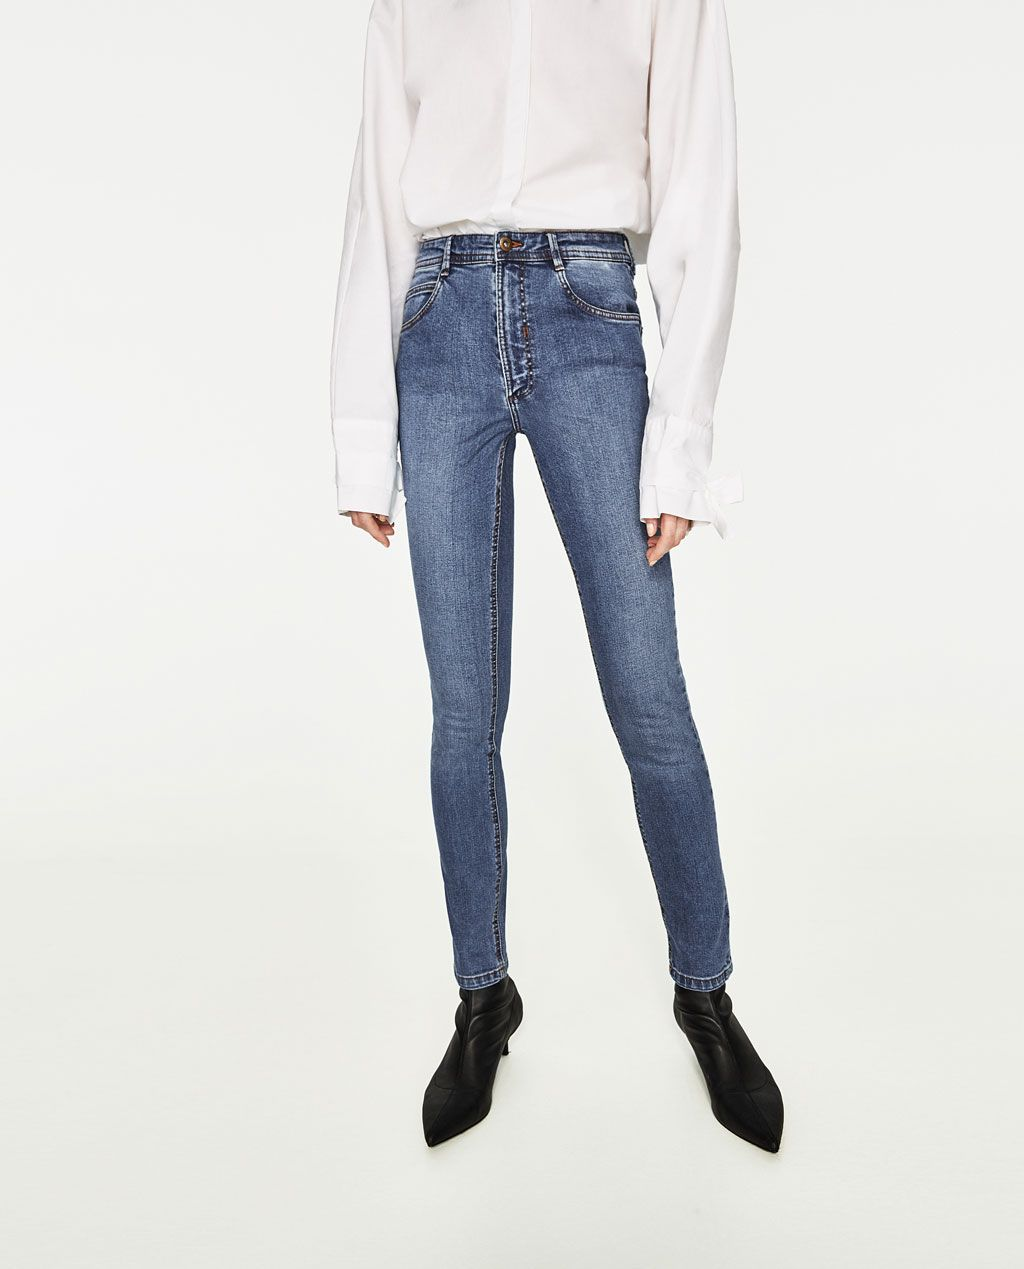 ba73be67 HIGH-RISE SKINNY FIT JEANS-View All-JEANS-WOMAN   ZARA United States ...